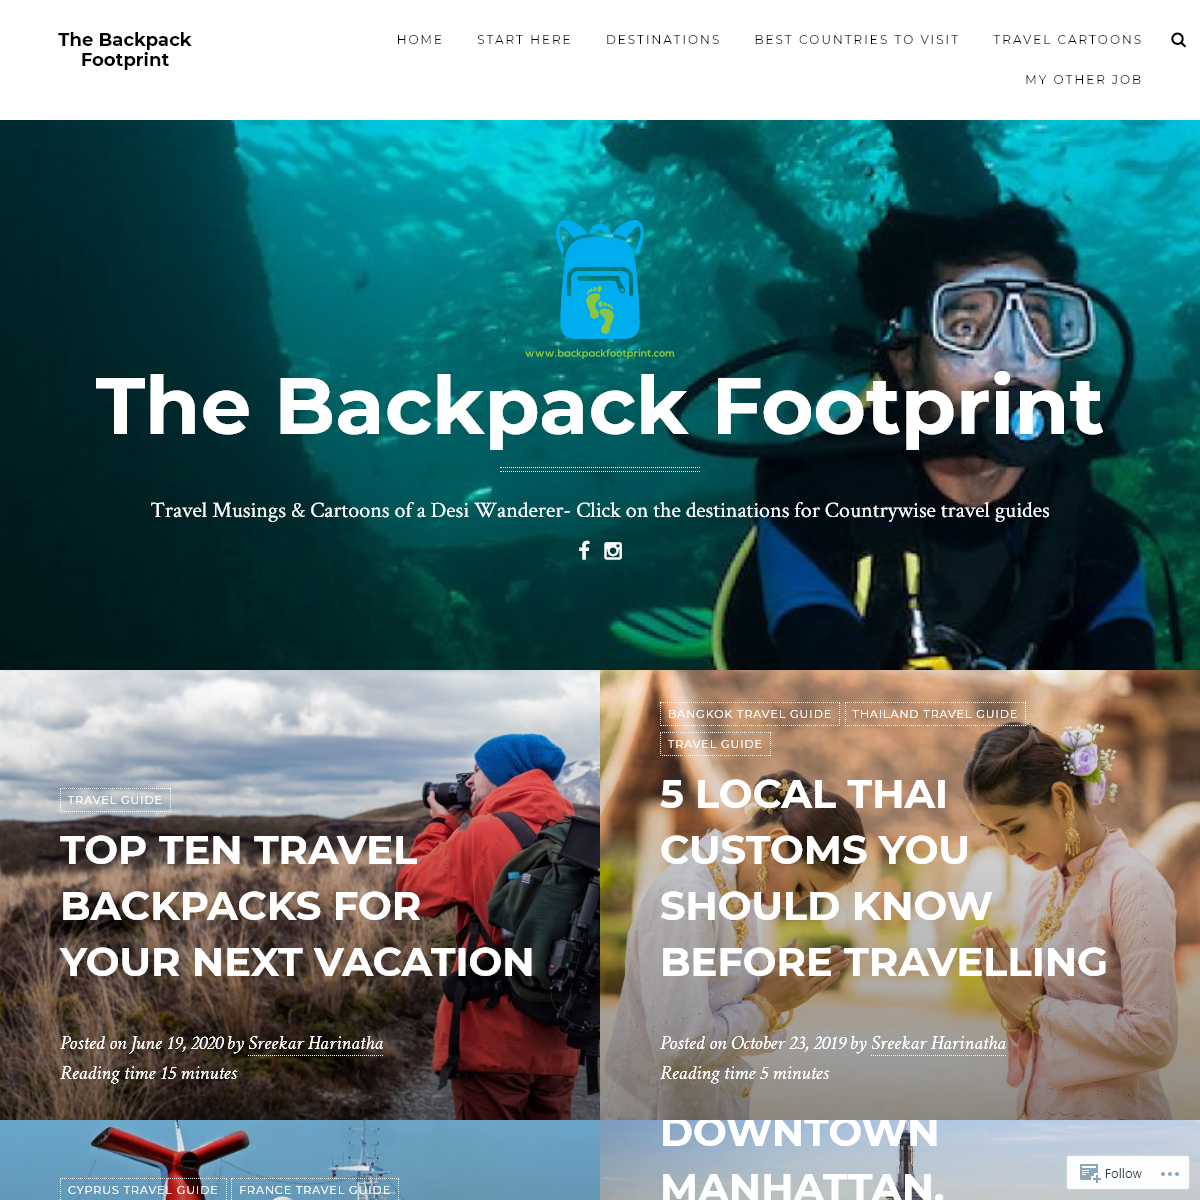 The Backpack Footprint